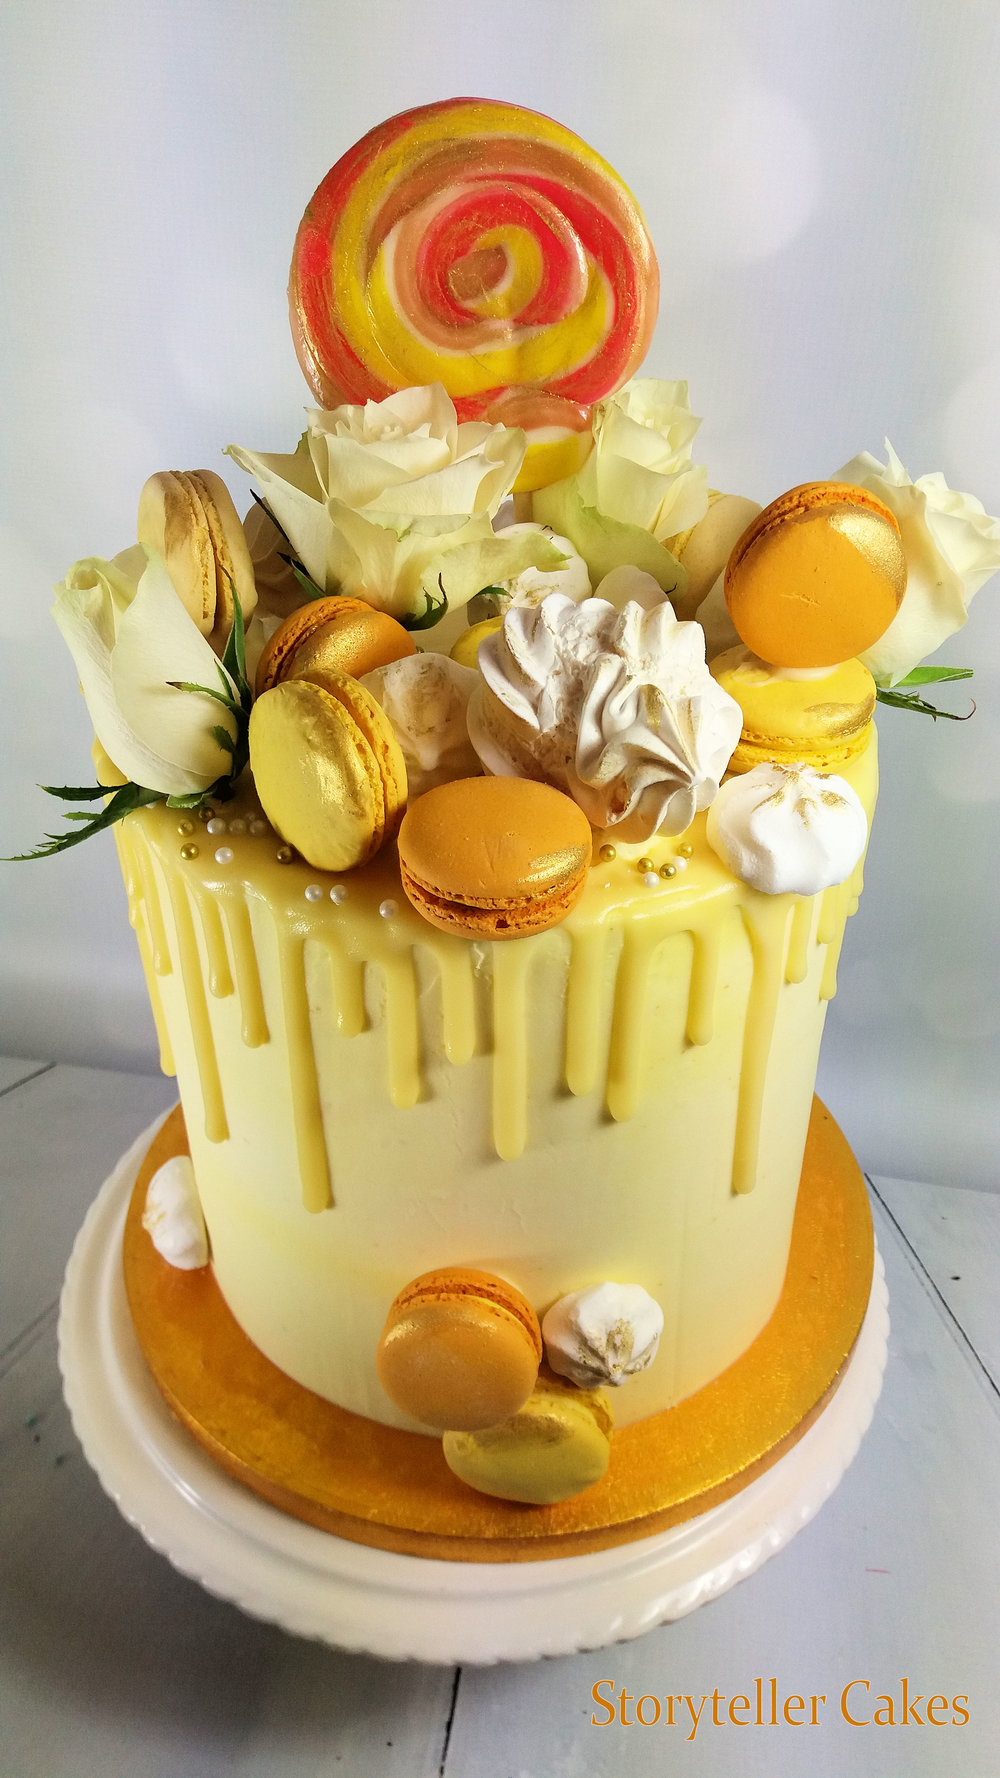 Lemon White Chocolate Drippy buttercream cake 2.jpg